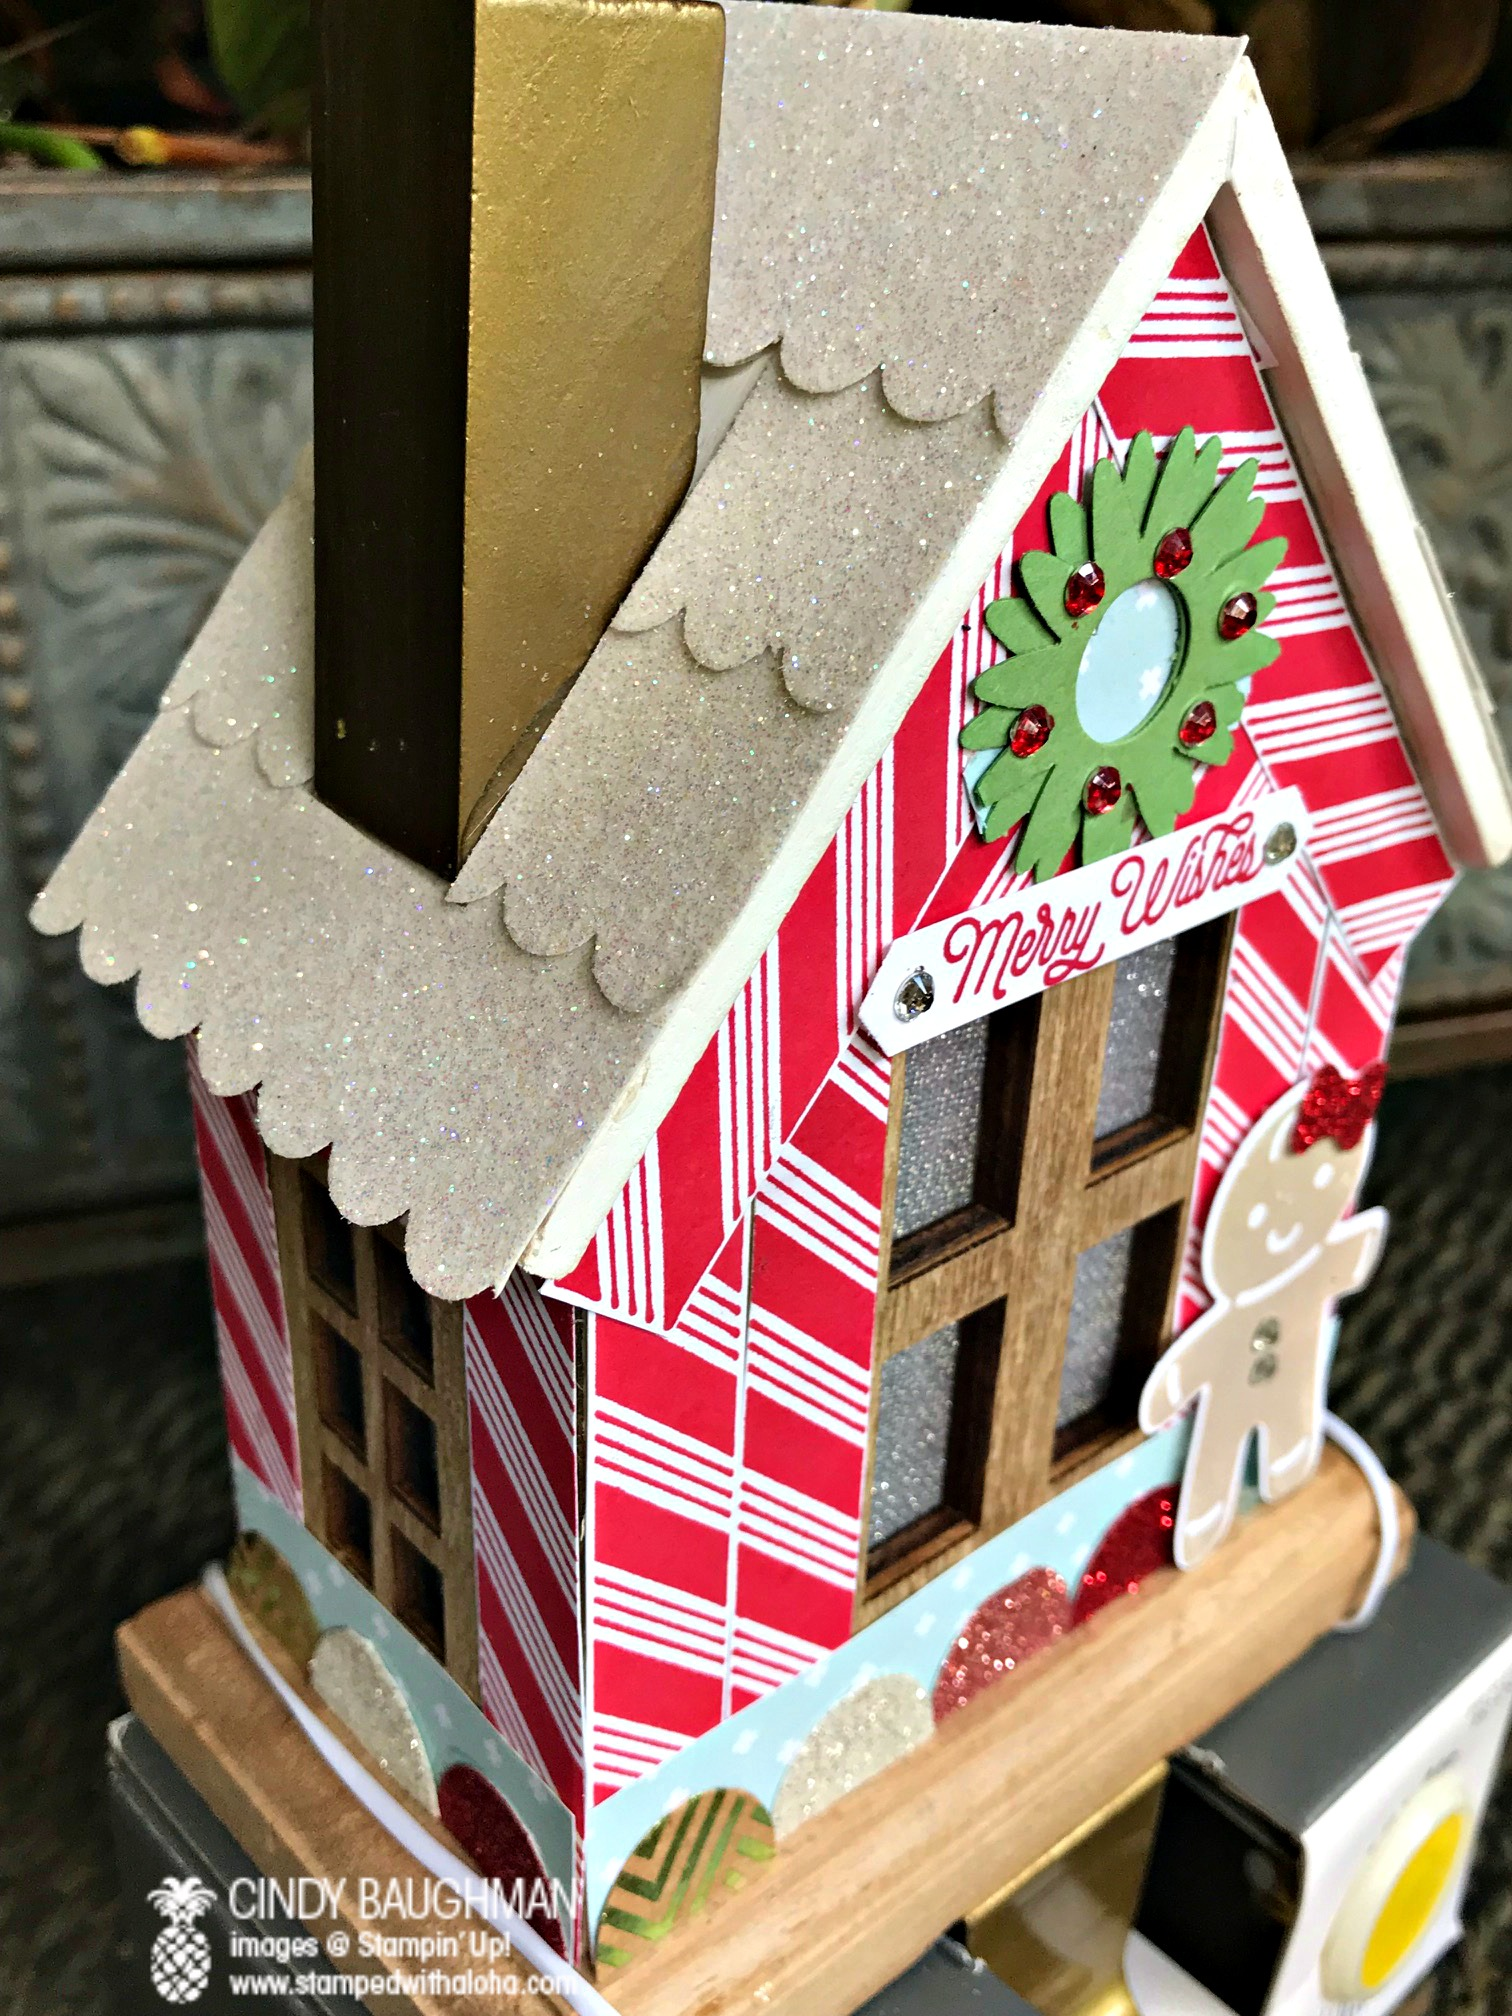 Gingerbread House Stocking Holder - www.stampedwithaloha.com